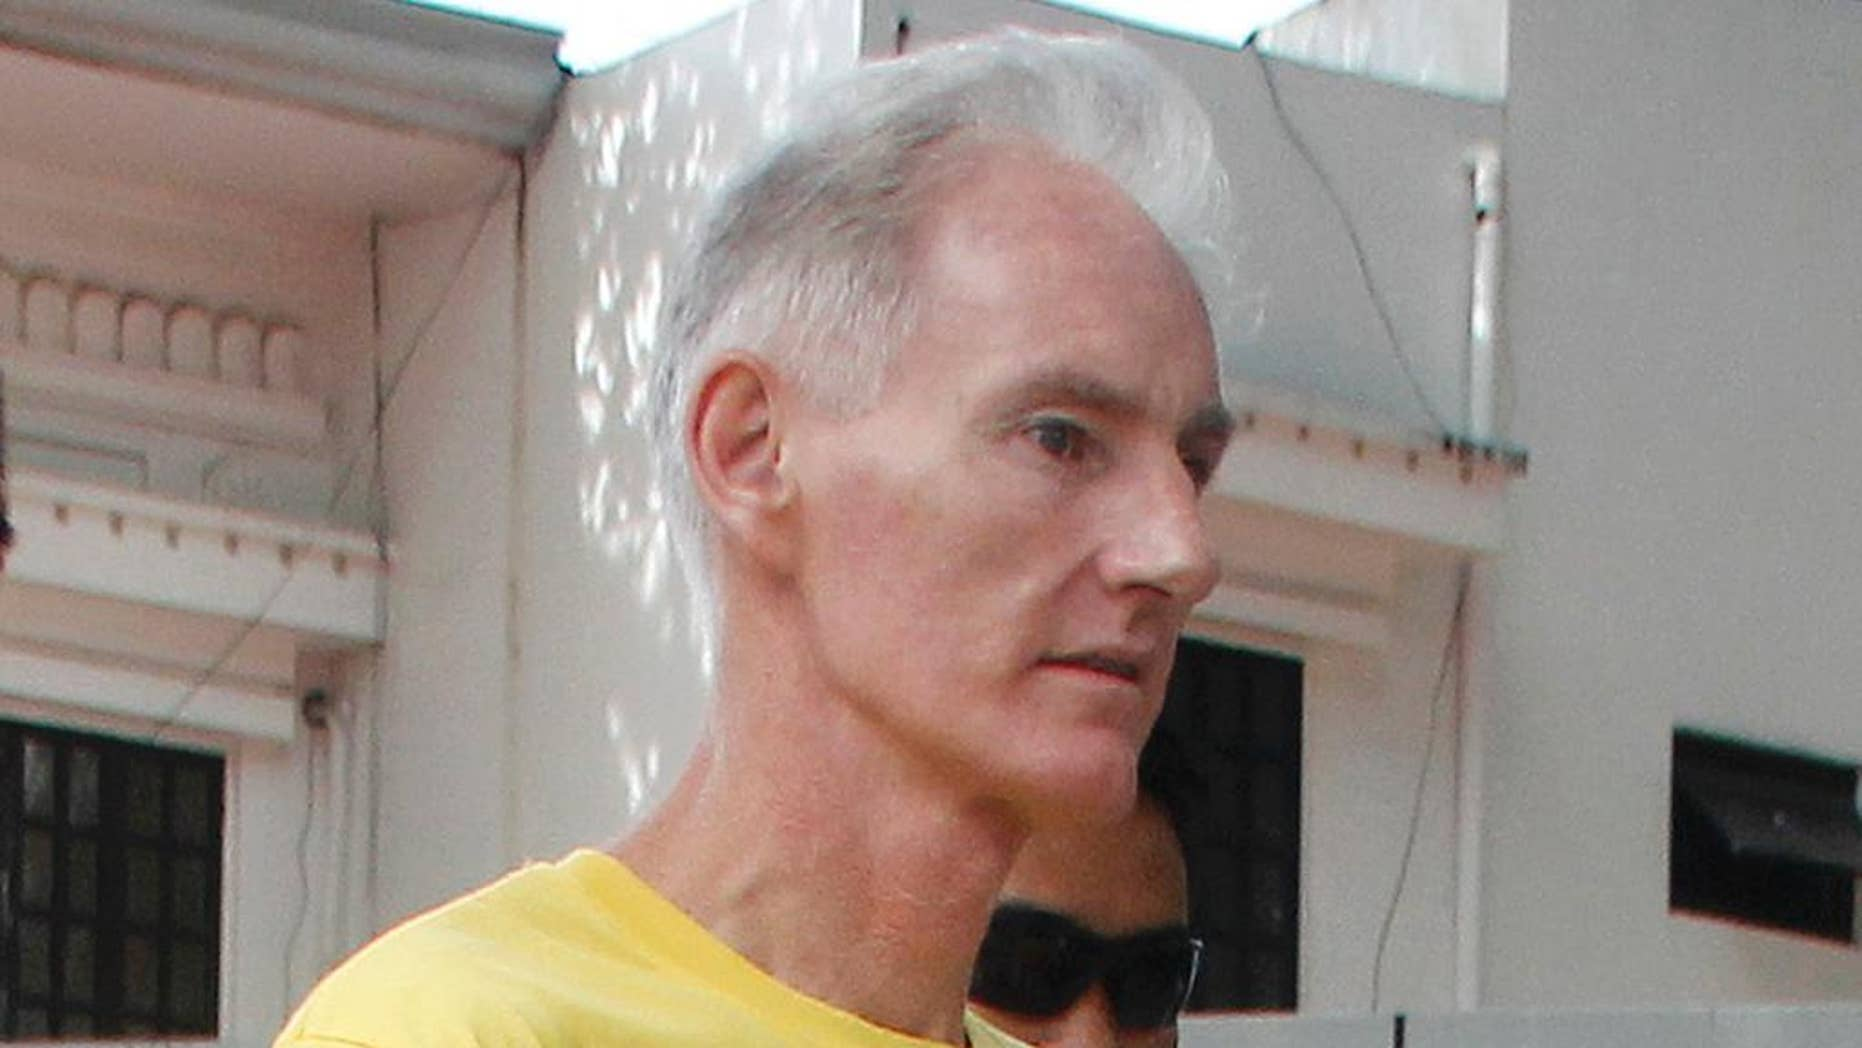 Peter Gerald Scully of Australia walks in handcuffs as he arrives at Cagayan de Oro city hall in southern Philippines on Tuesday, June 16, 2015. Scully and his Filipino girlfriend Carme Ann Alvarez have pleaded not guilty to charges of raping and trafficking two girls aged 9 and 12 in a southern Philippine city. (AP Photo)